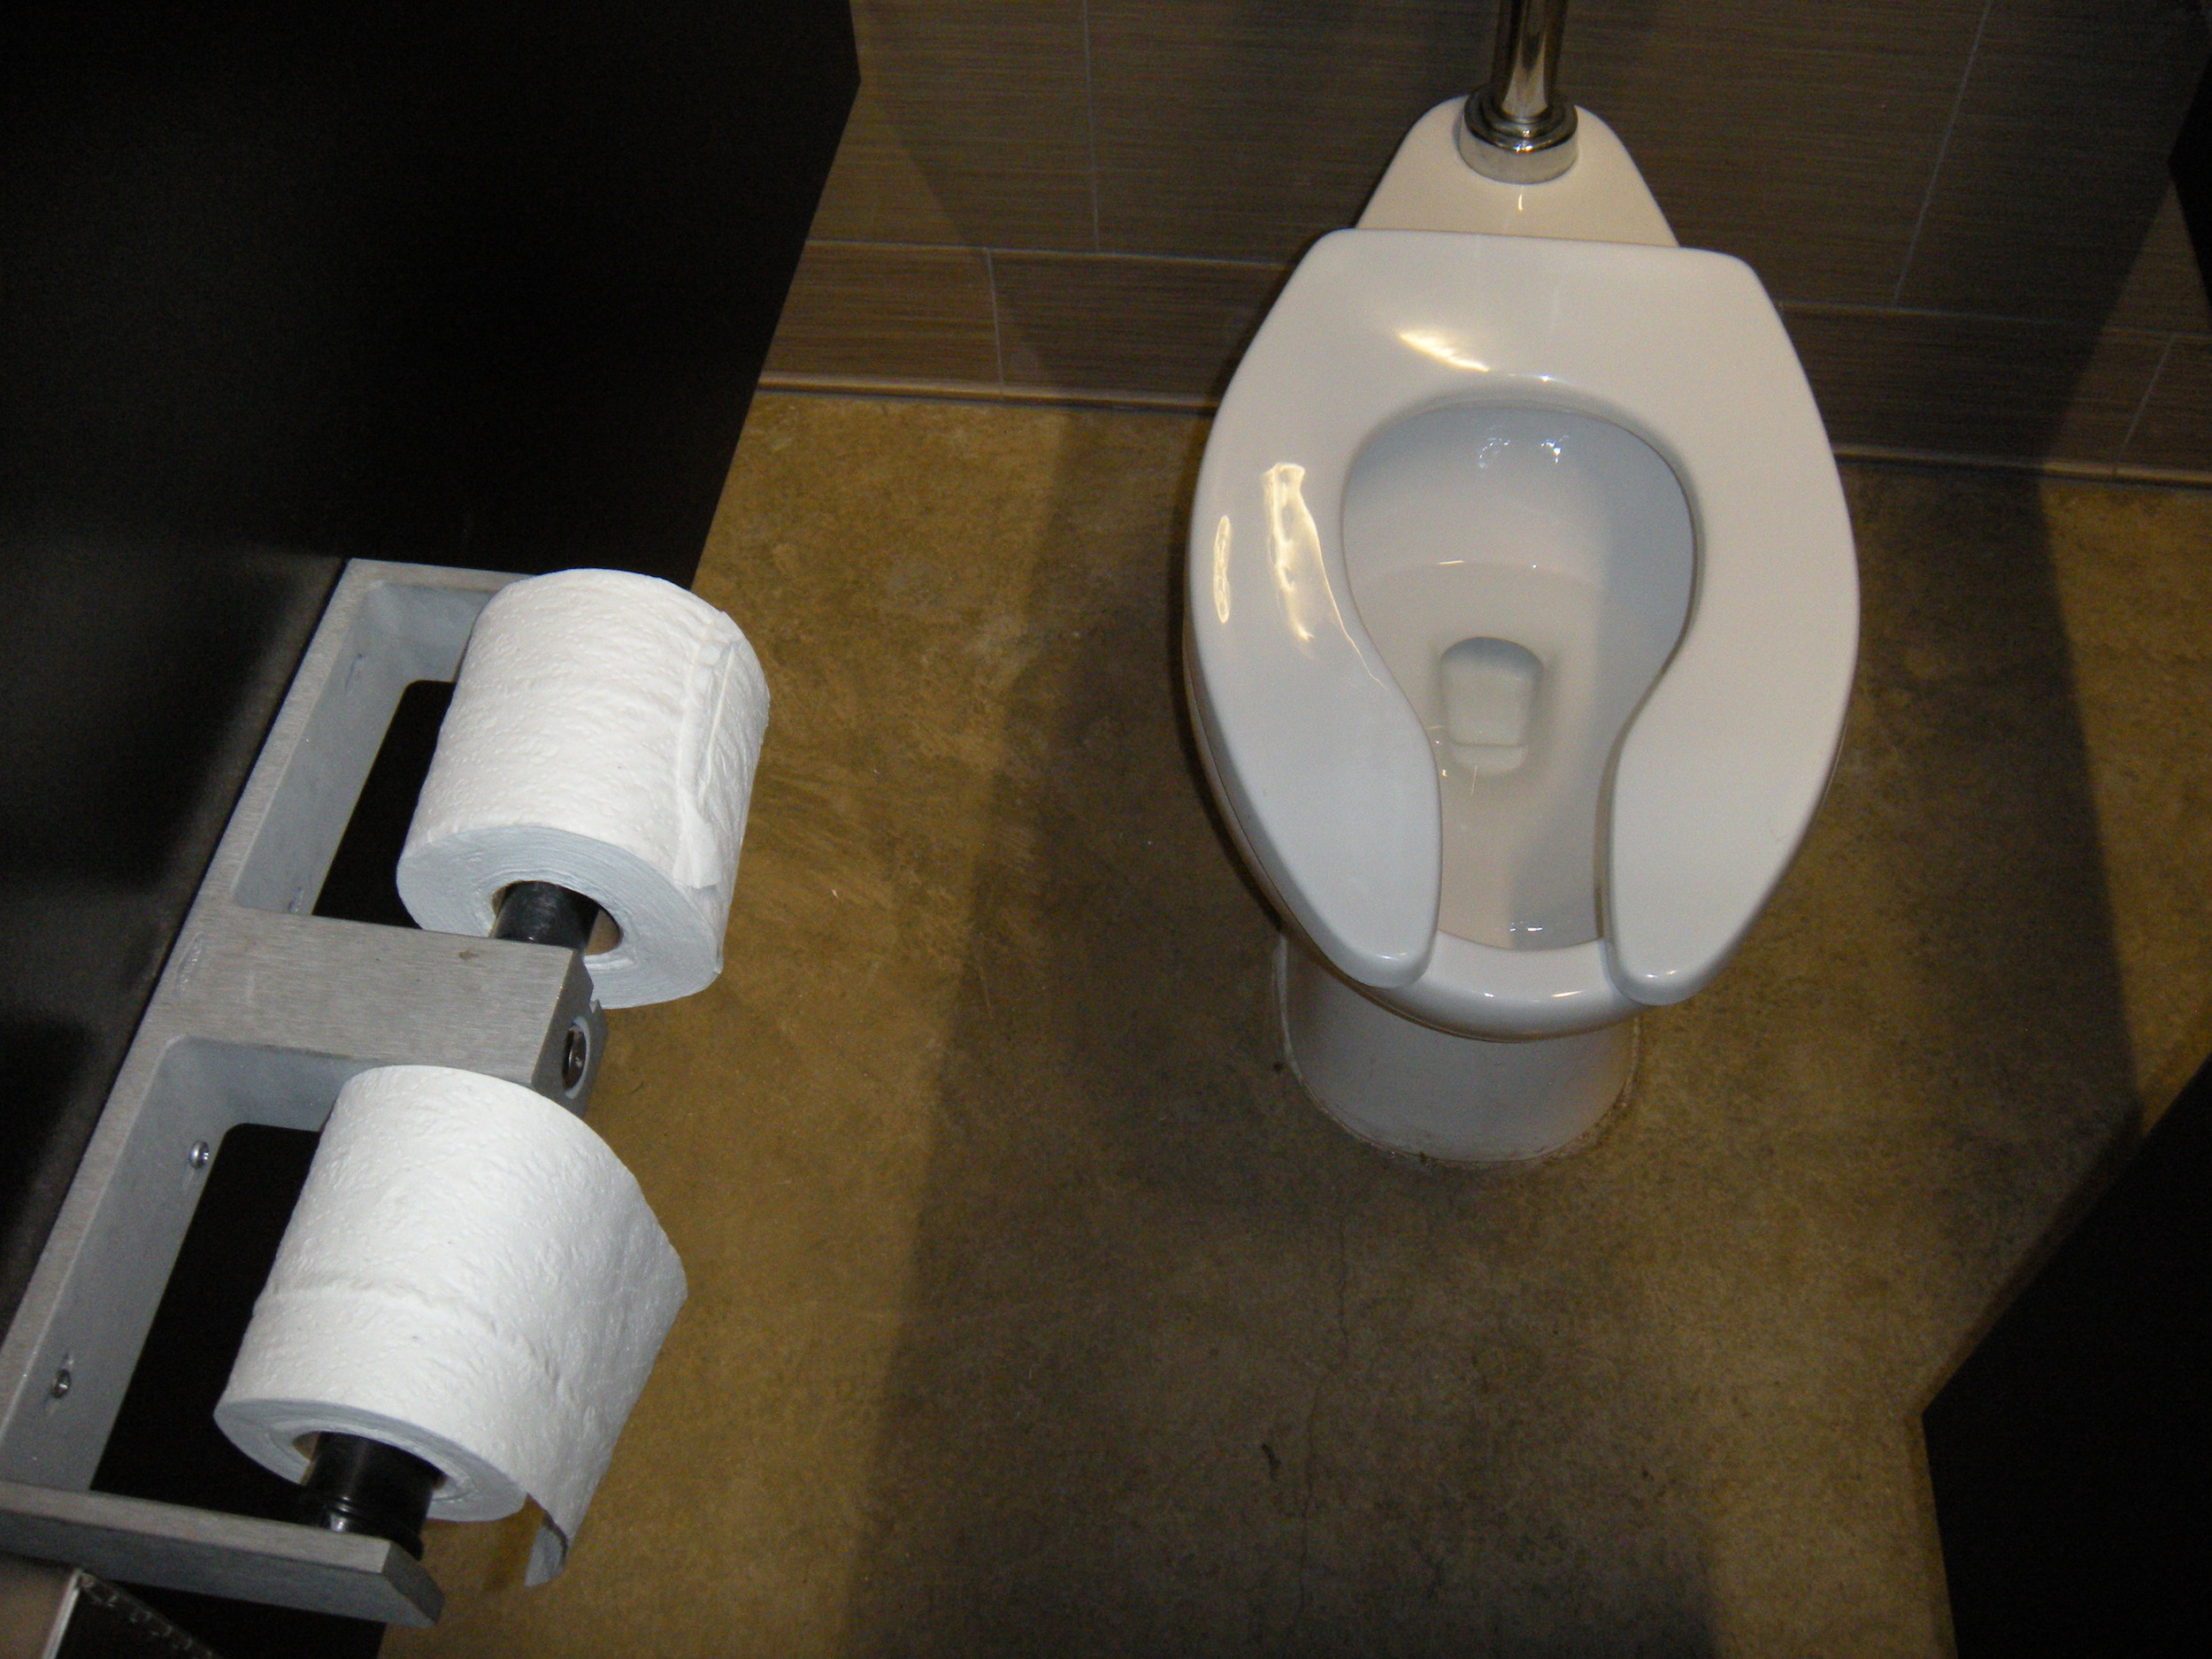 Seriously, the cleanest public toilet ever.